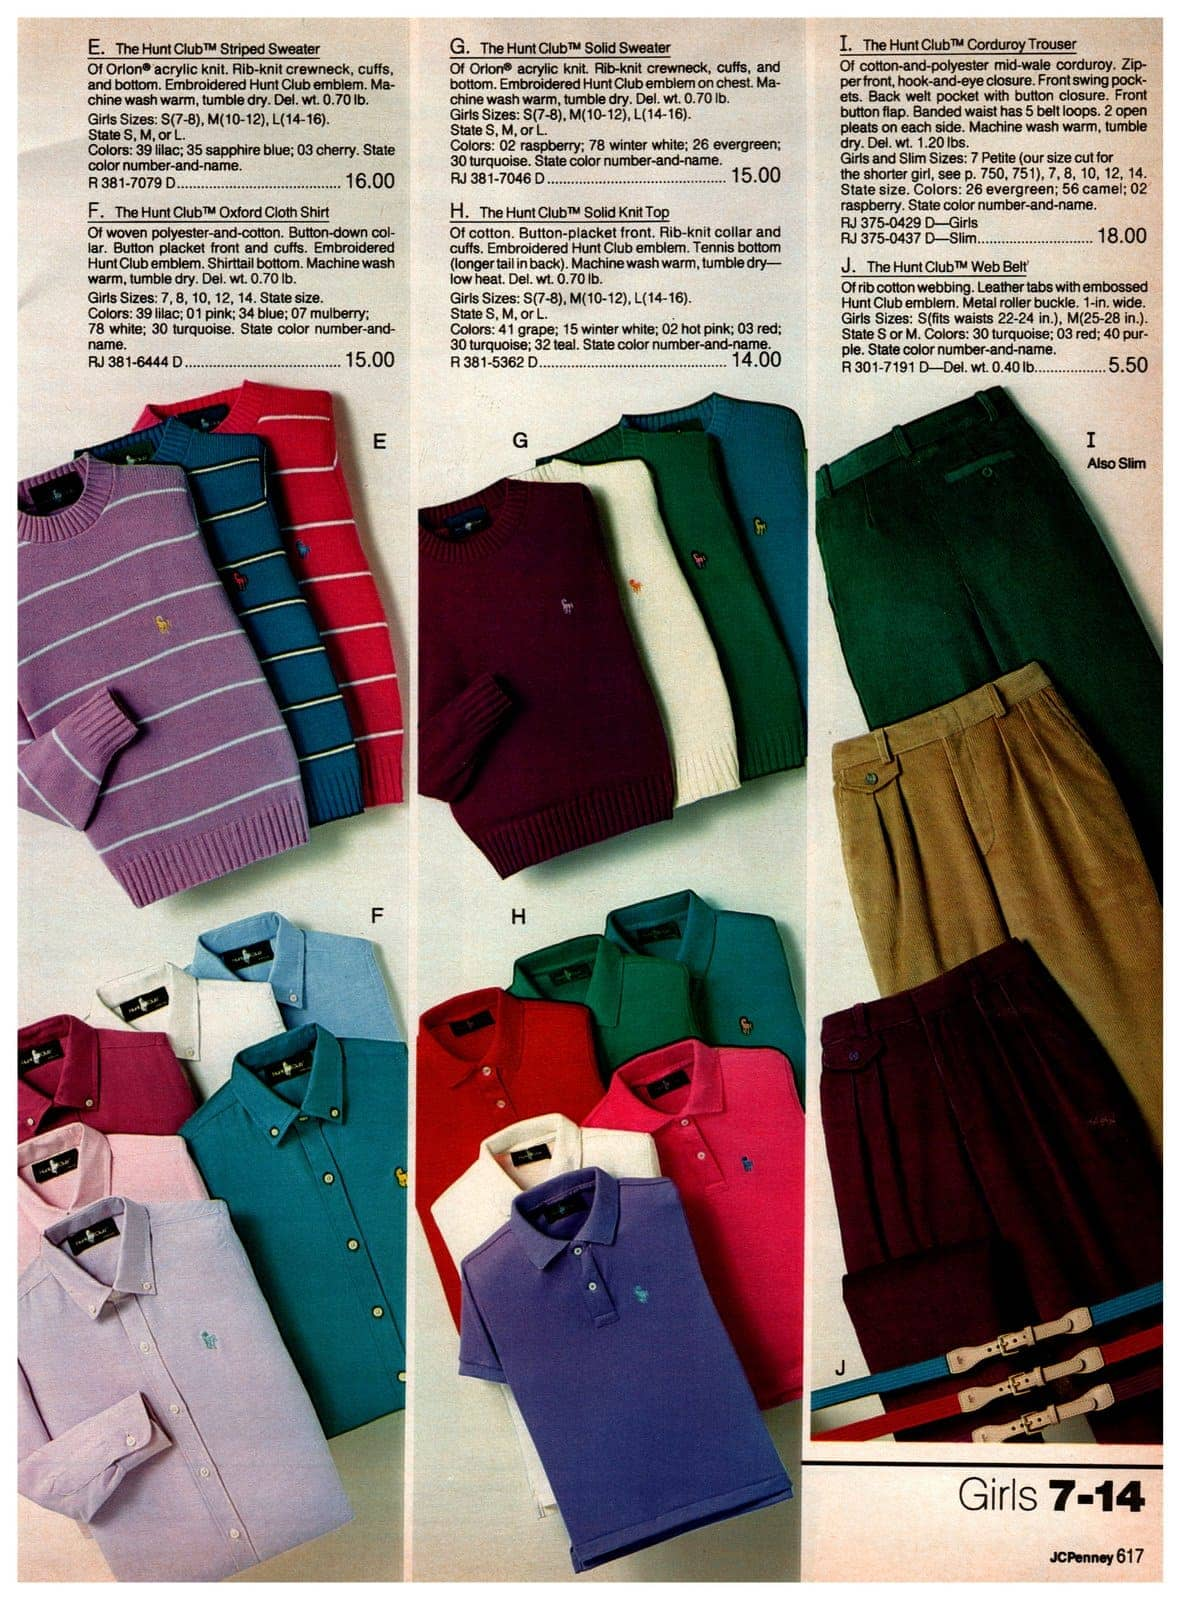 591e478f855b50 Striped sweaters, Hunt Club Oxford cloth shirts, knit tops, corduroy  trousers and web